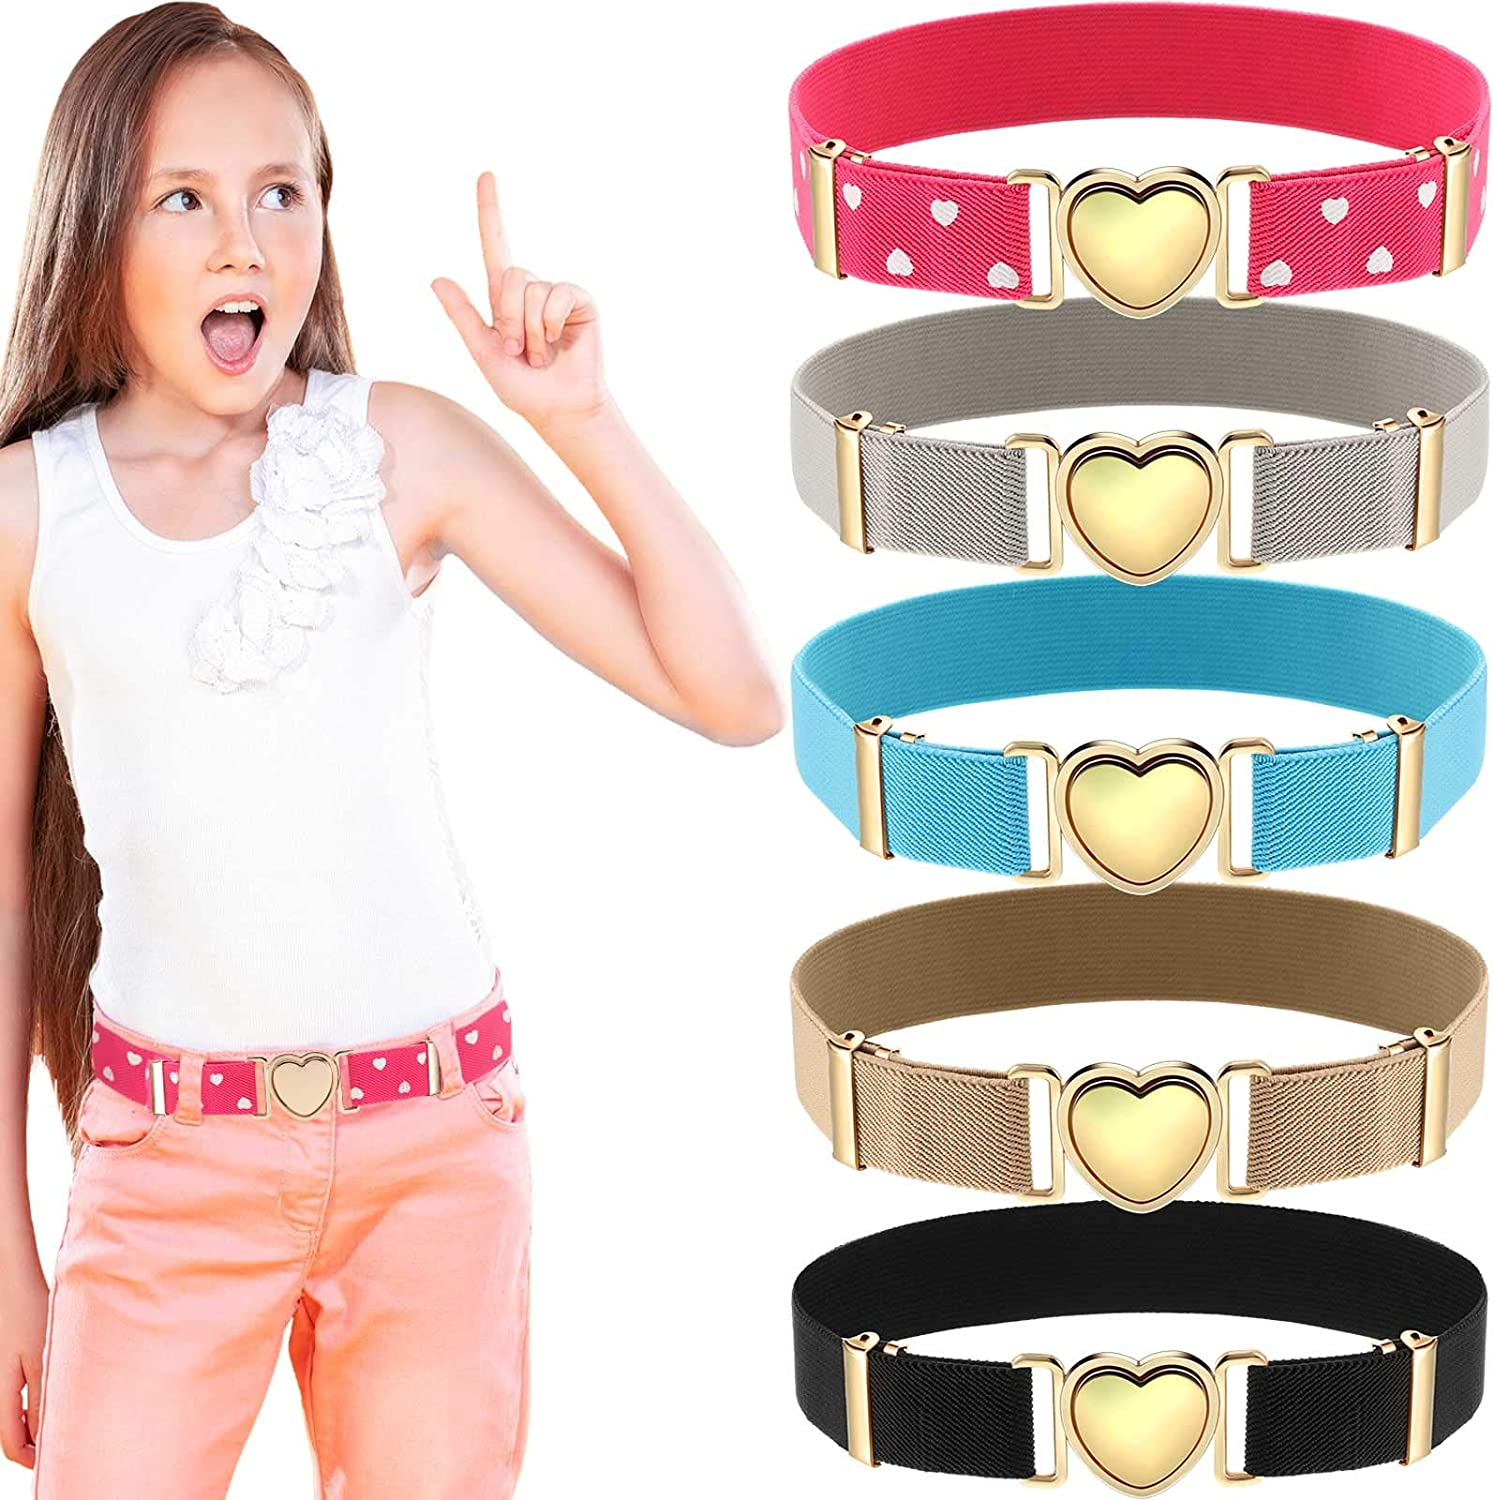 5 Pieces Elastic Stretch Belts for Girls Little Toddler Teen Kids Adjustable Uniform Belt Heart Belt